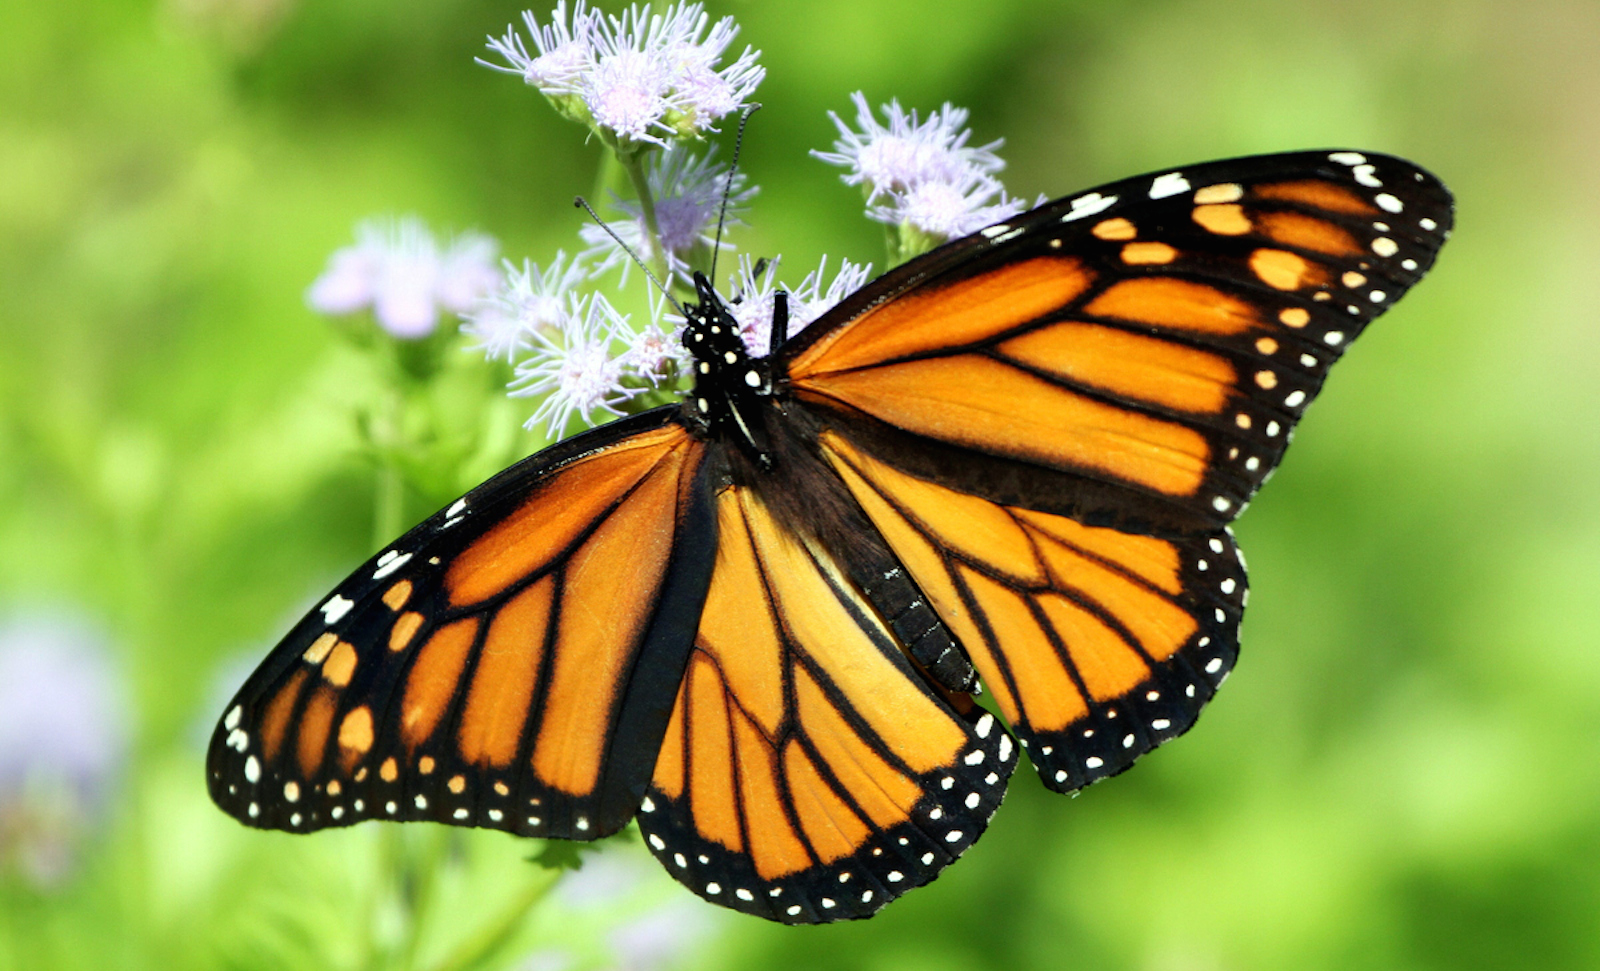 How the butterfly can shape an ecosystem and why we need to how the butterfly can shape an ecosystem and why we need to protect them one green planetone green planet buycottarizona